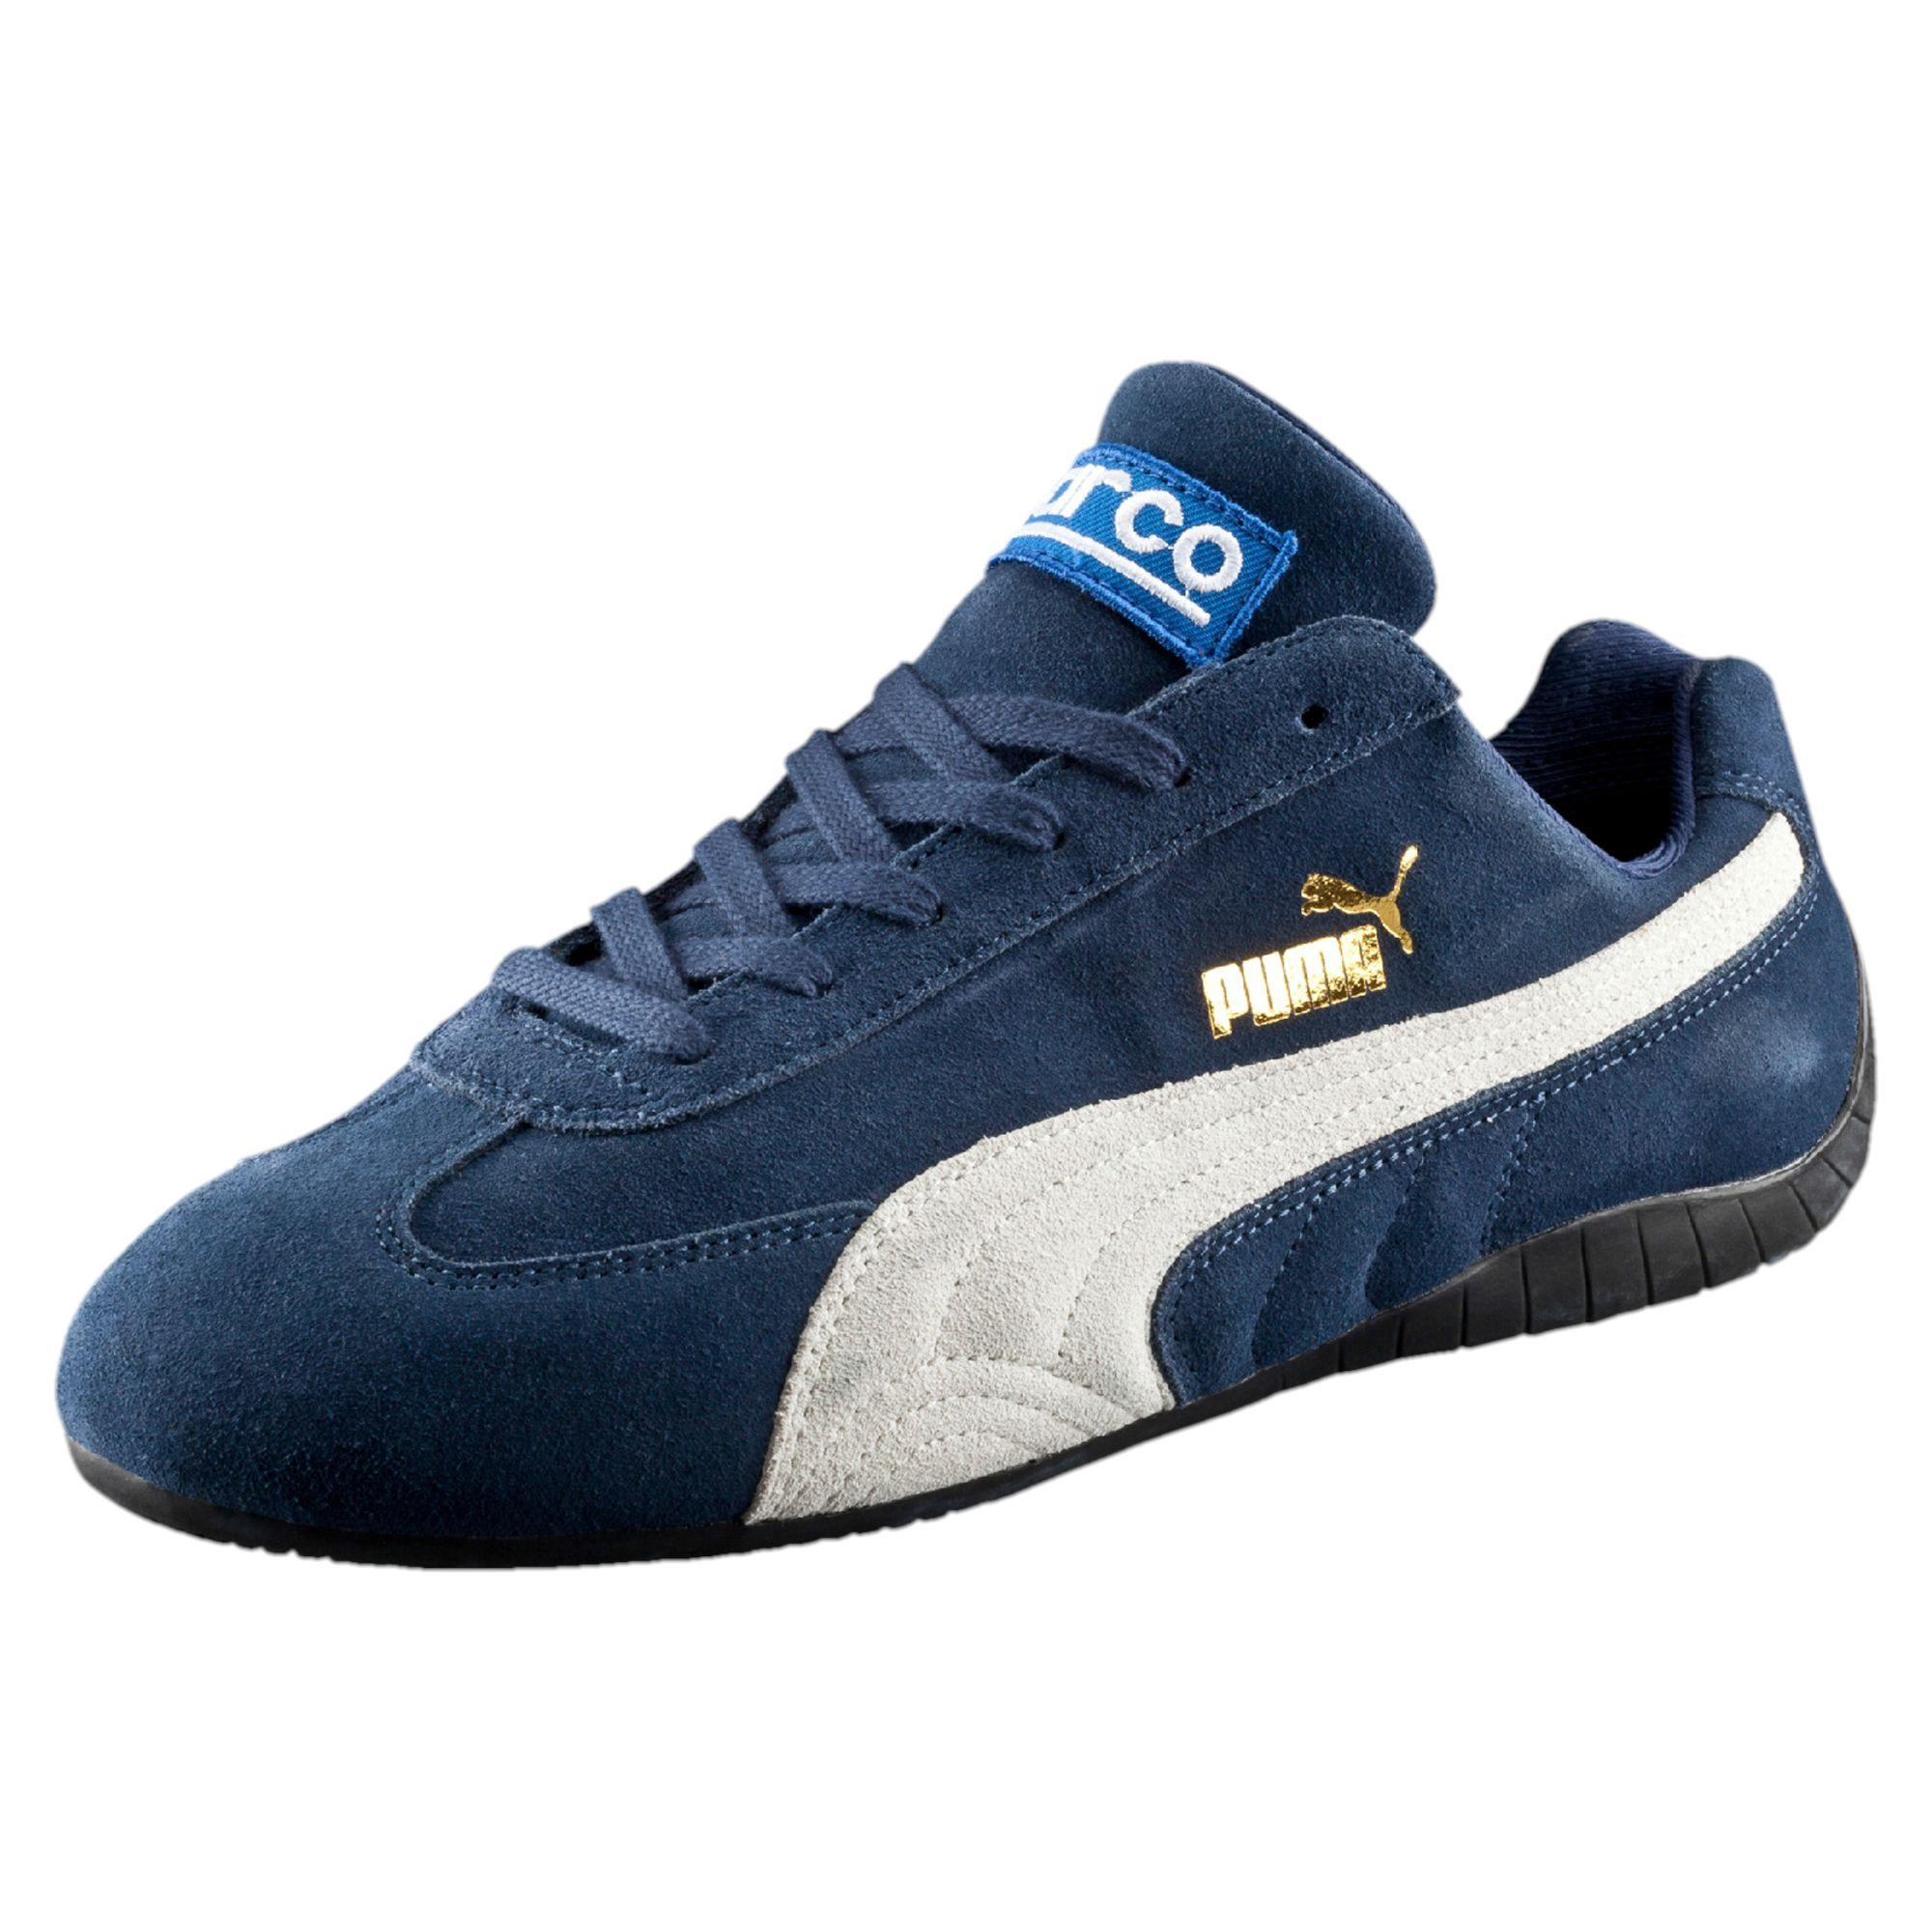 ba9bb6f73b5f6 PUMA Speed Cat Sparco Shoes in Blue for Men - Lyst